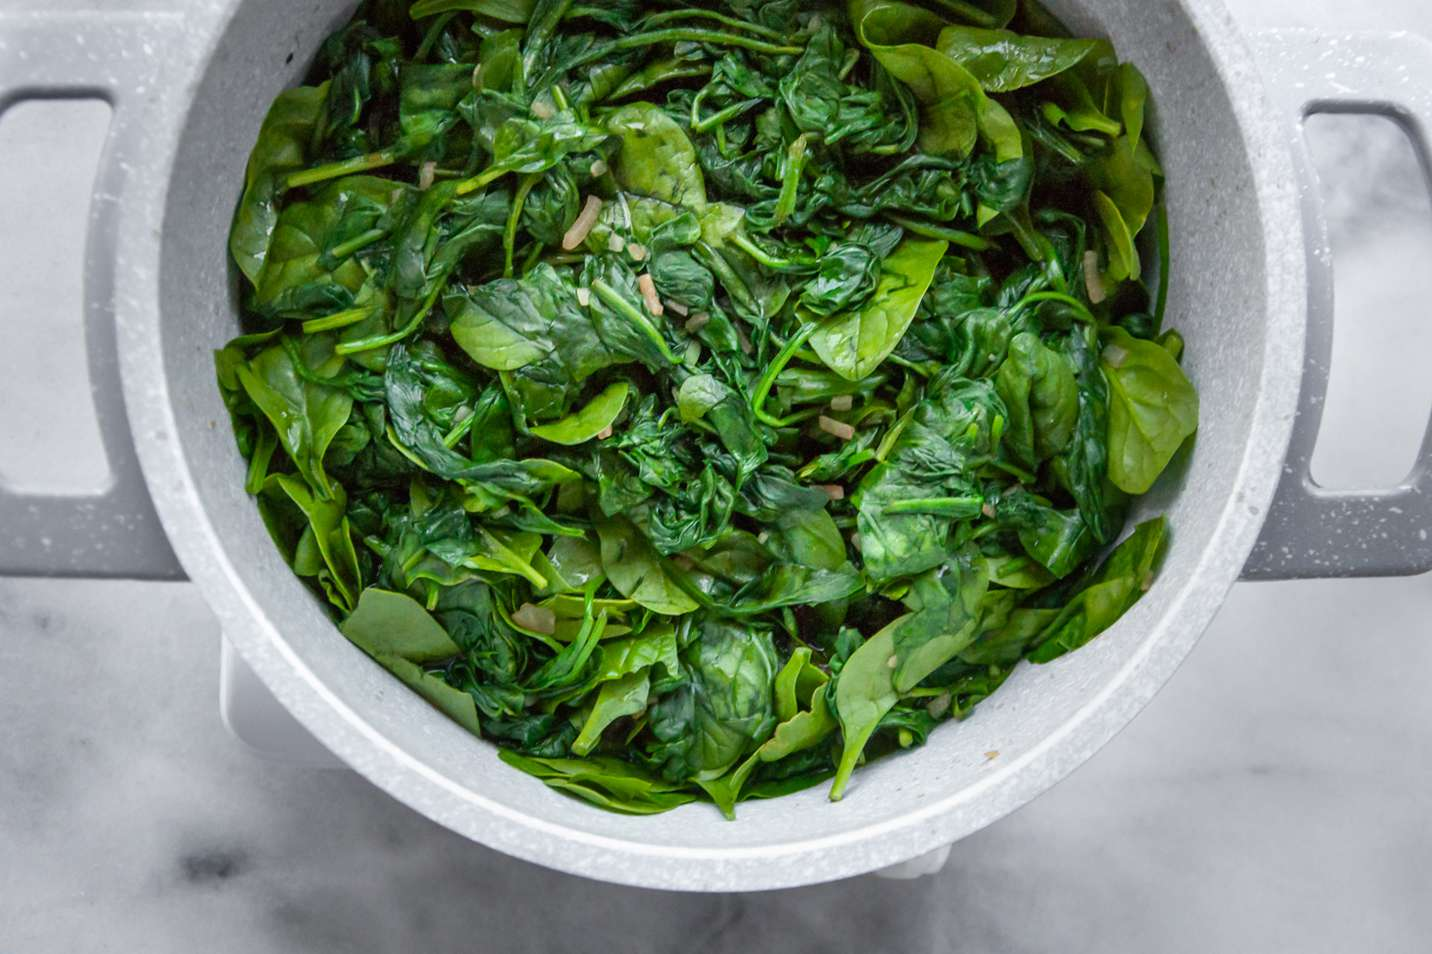 onion soup mix and spinach in a saucepan